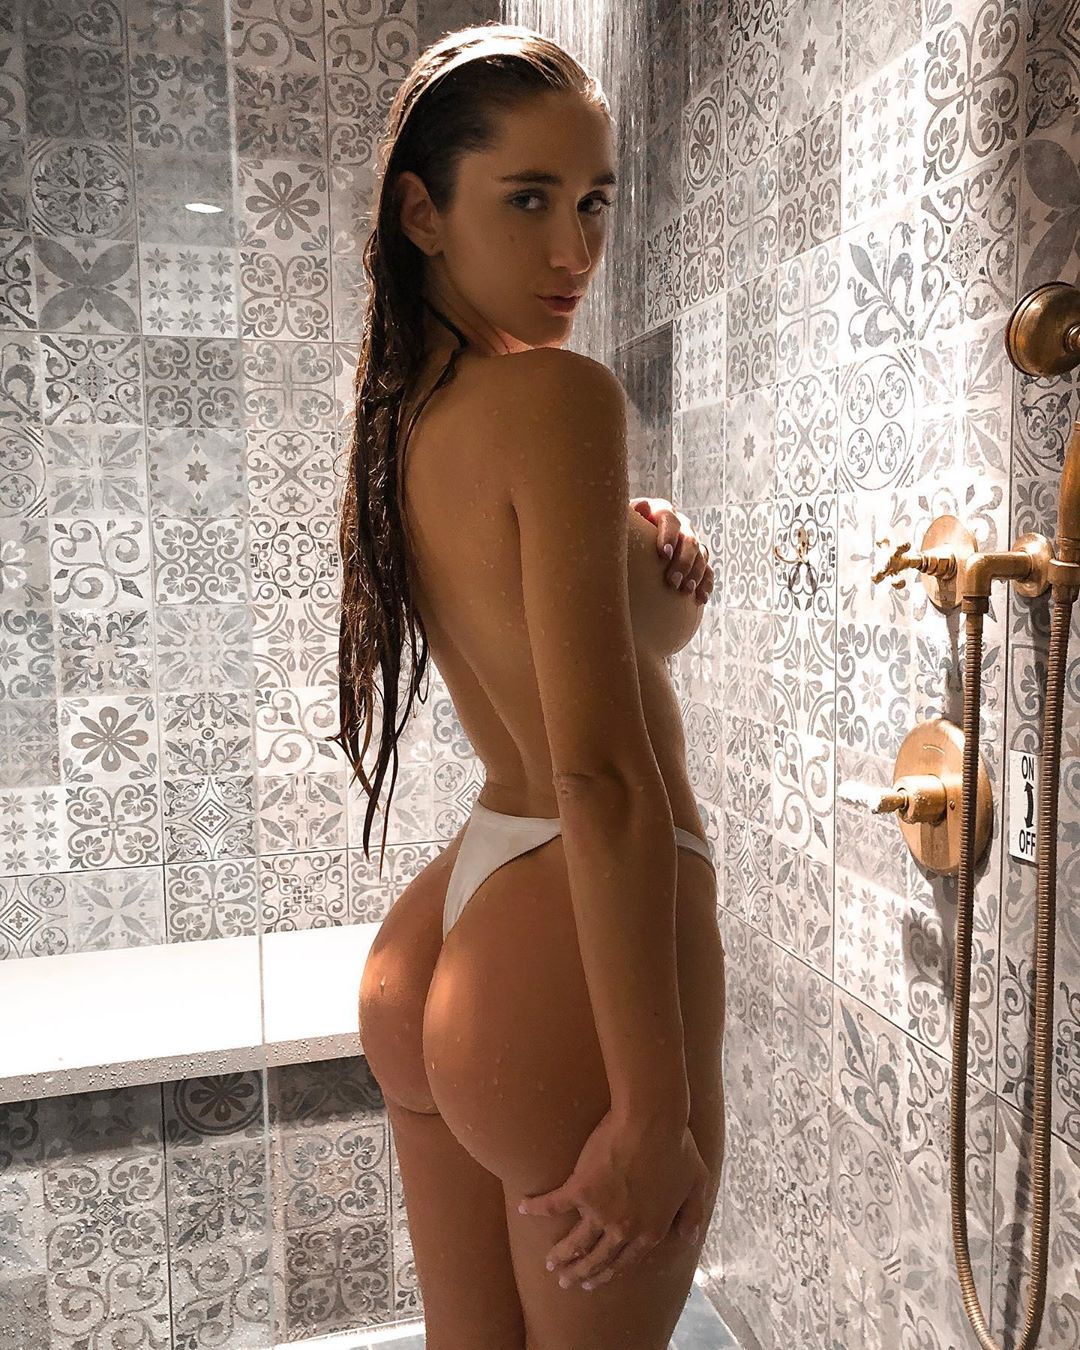 Natalie Roush